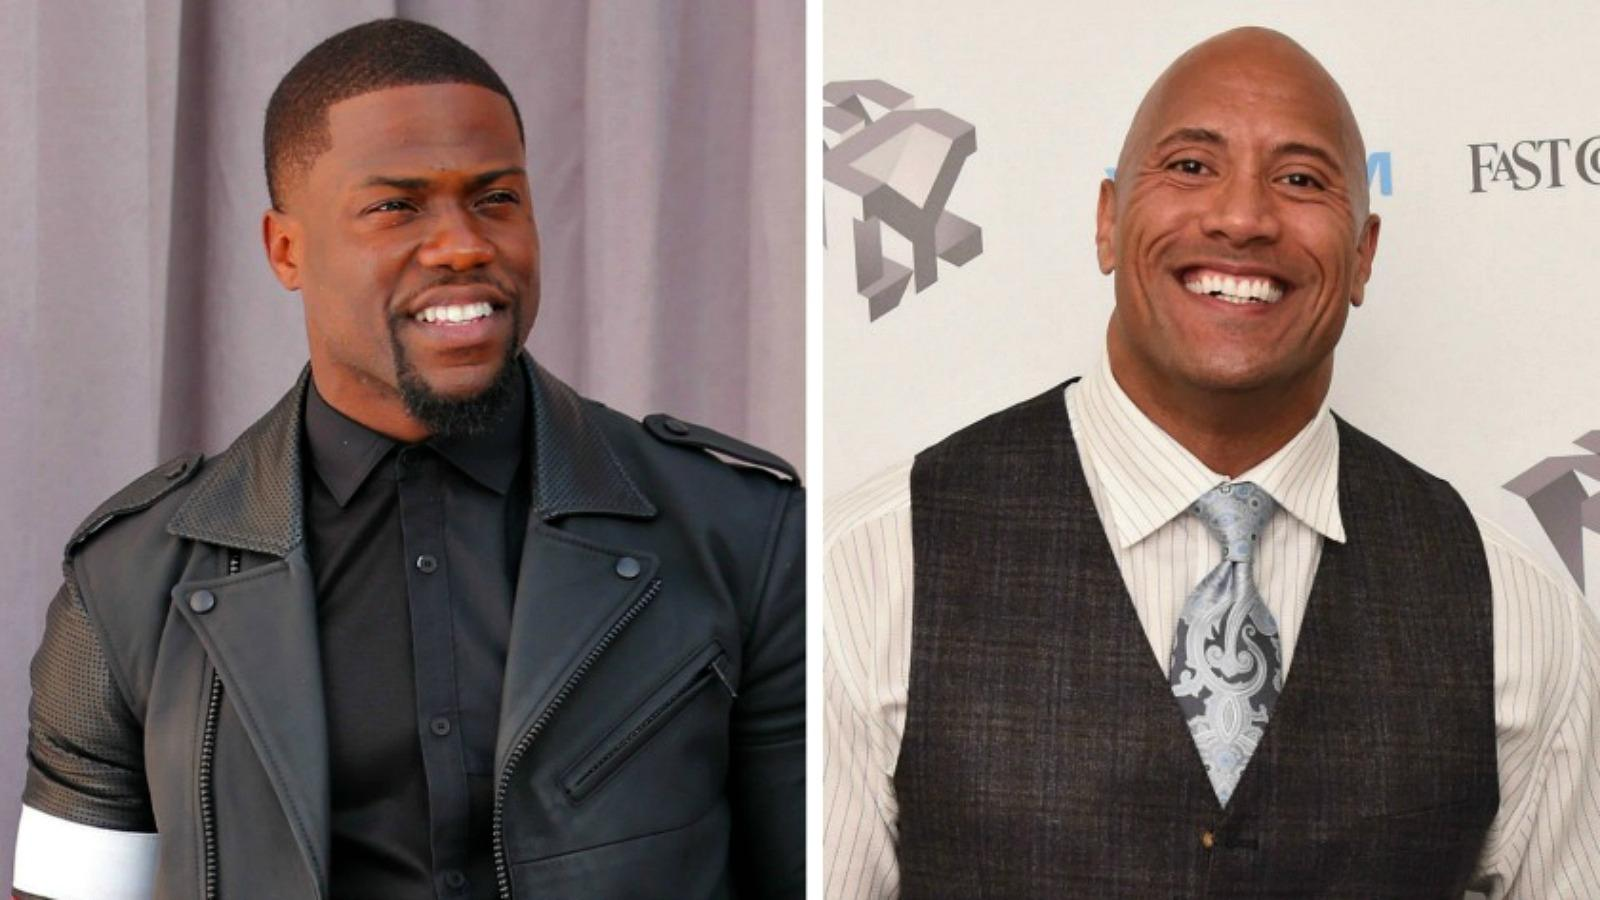 Kevin Hart & Dwayne 'The Rock' Johnson Laugh About Their High School Days